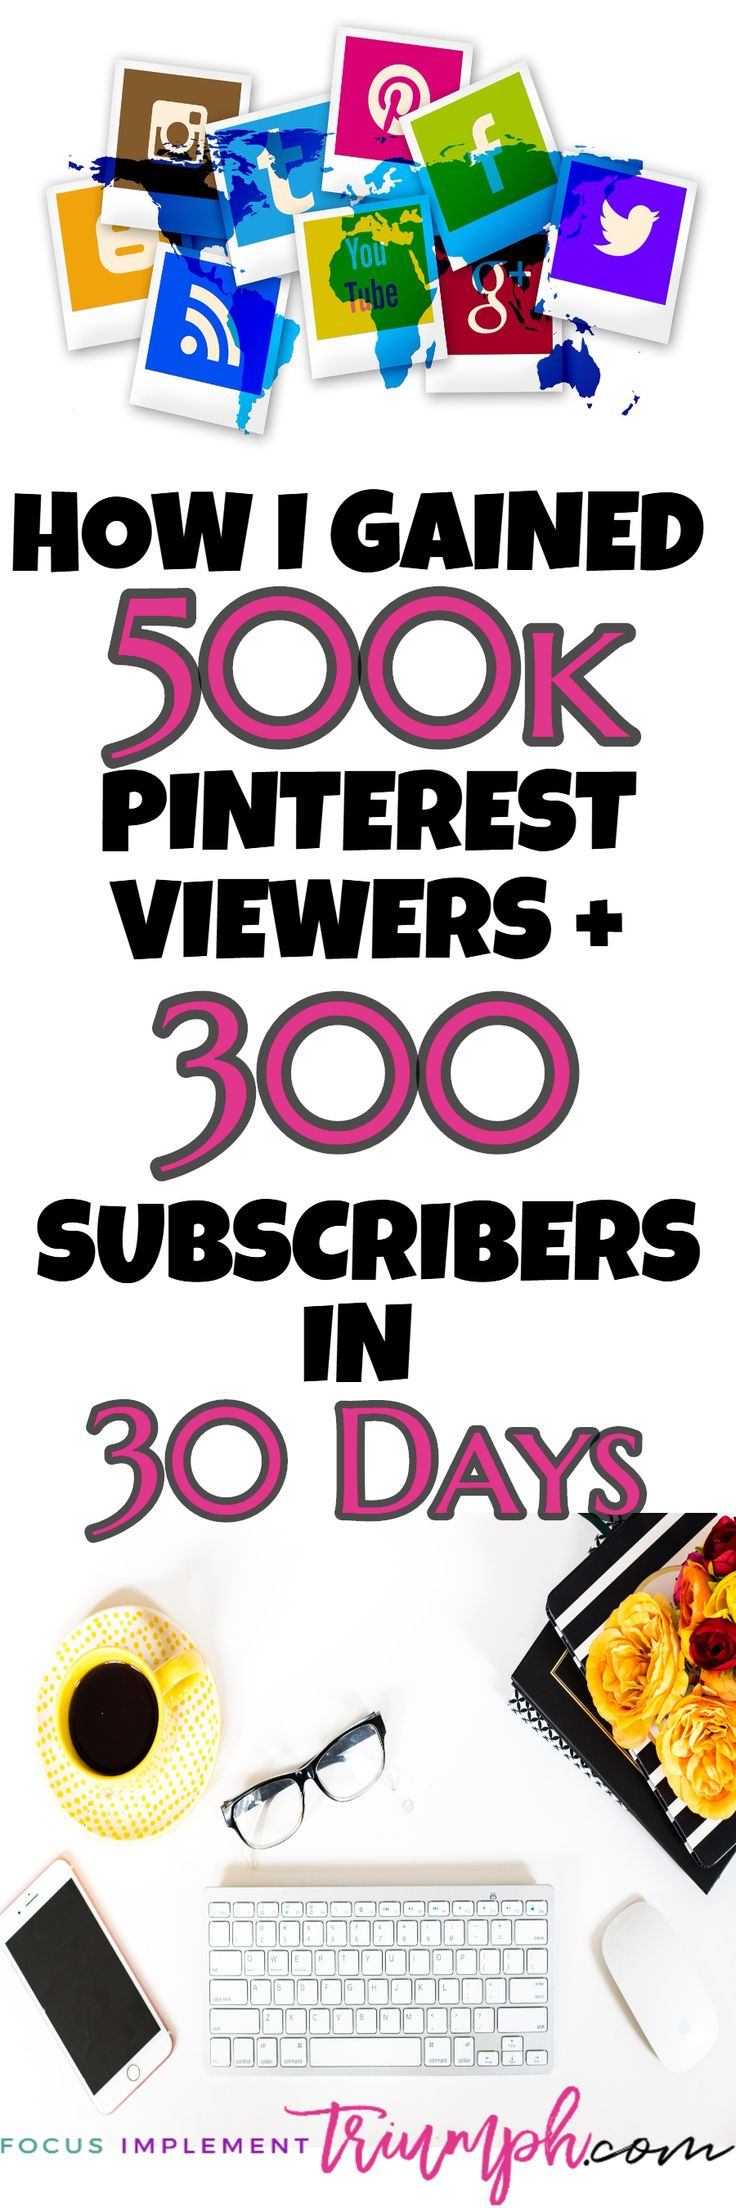 Are you struggling to gain new subscribers? Frustrated because no one is reading your blog? This post shares the EXACT 5 Step Strategy I used to gain 500K Pinterest Monthly Viewers & 312 New Subscribers IN 30 DAYS! | Email List Building, How to Get an Email List, Email List Ideas, Grow My Email List, Email List Growth, Email List for Bloggers, Email List Tips, email list marketing, email list social media #emailmarketingtips #bloggingtips #emaillist